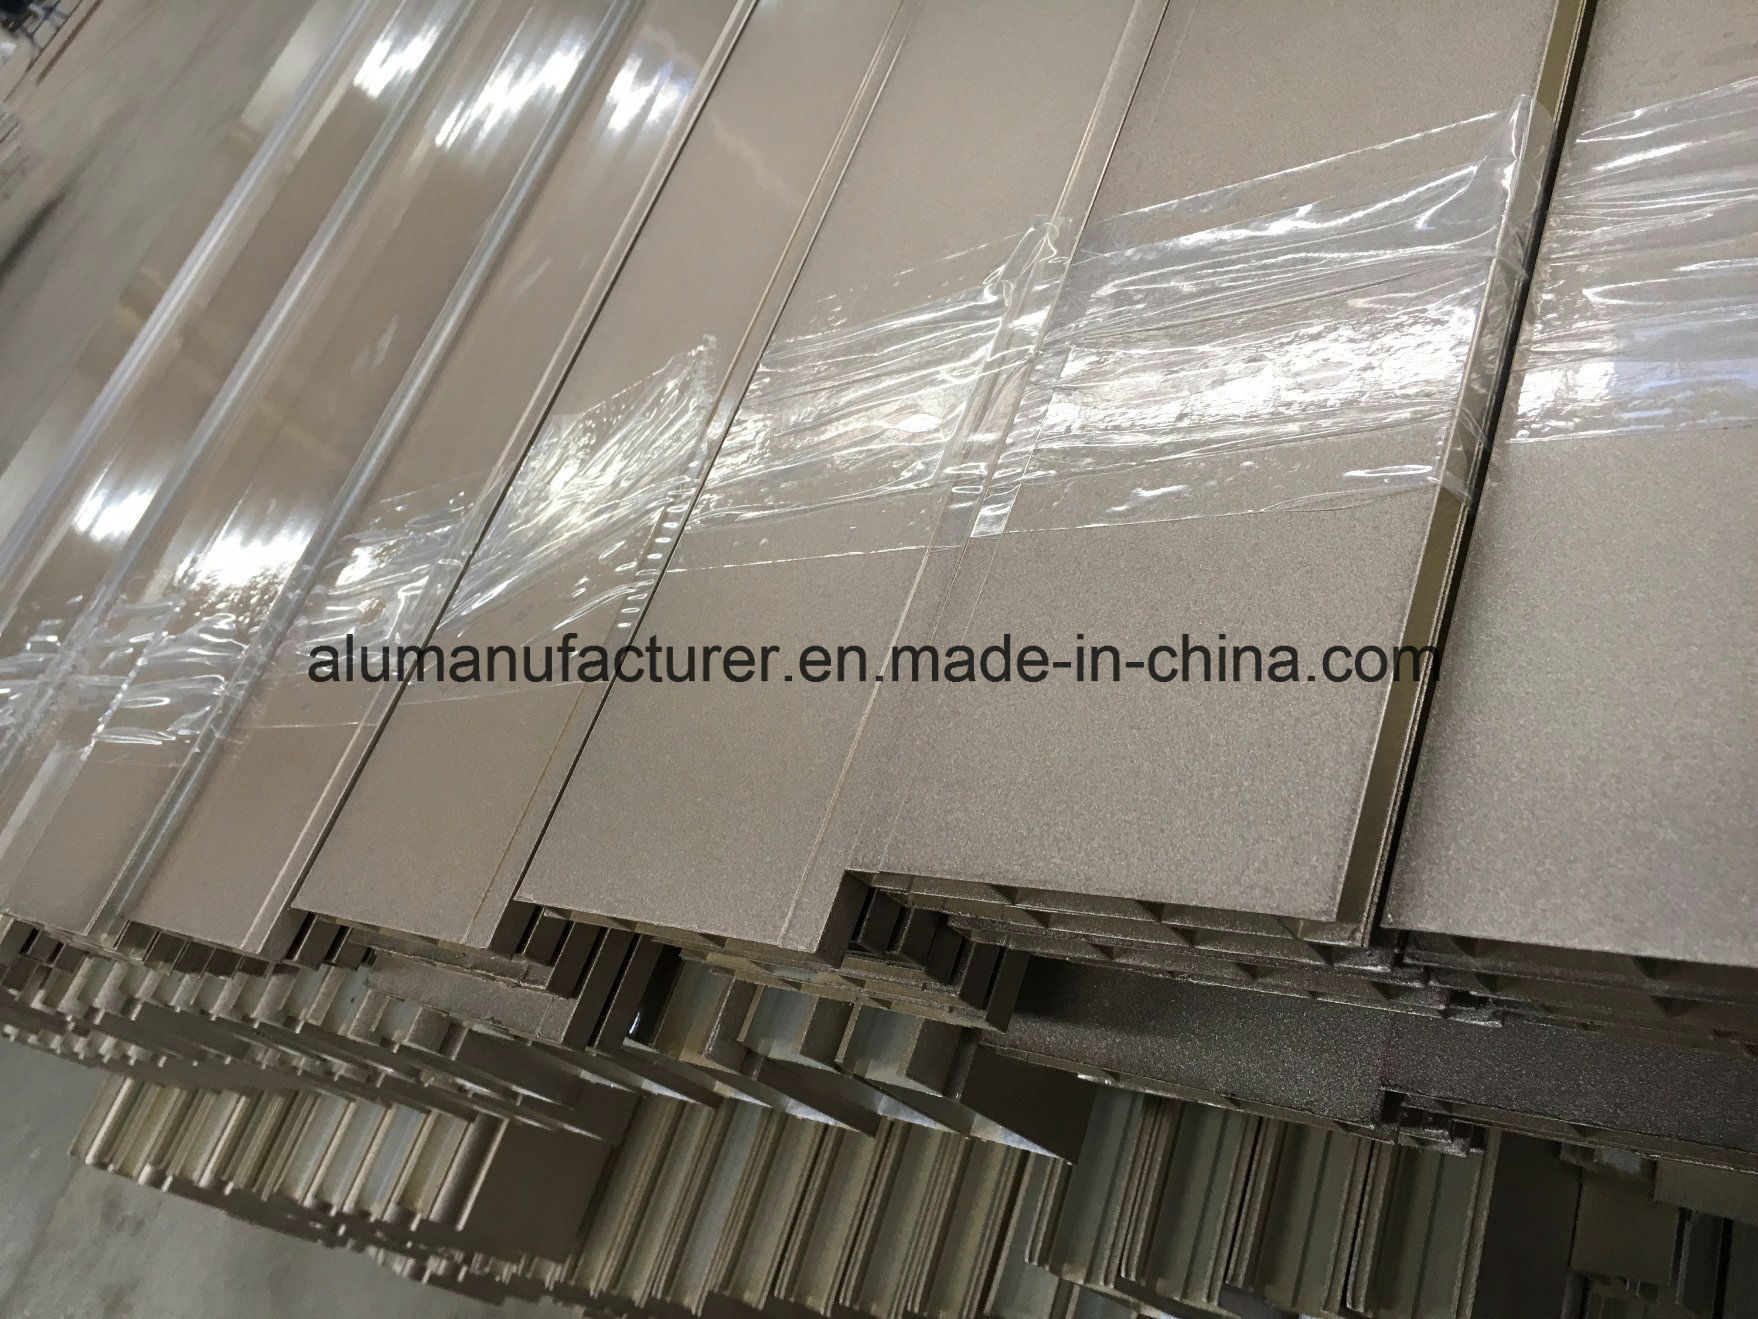 Metalic Powder Coated Aluminium Alloy Extrusion Profile for Door and Window pictures & photos